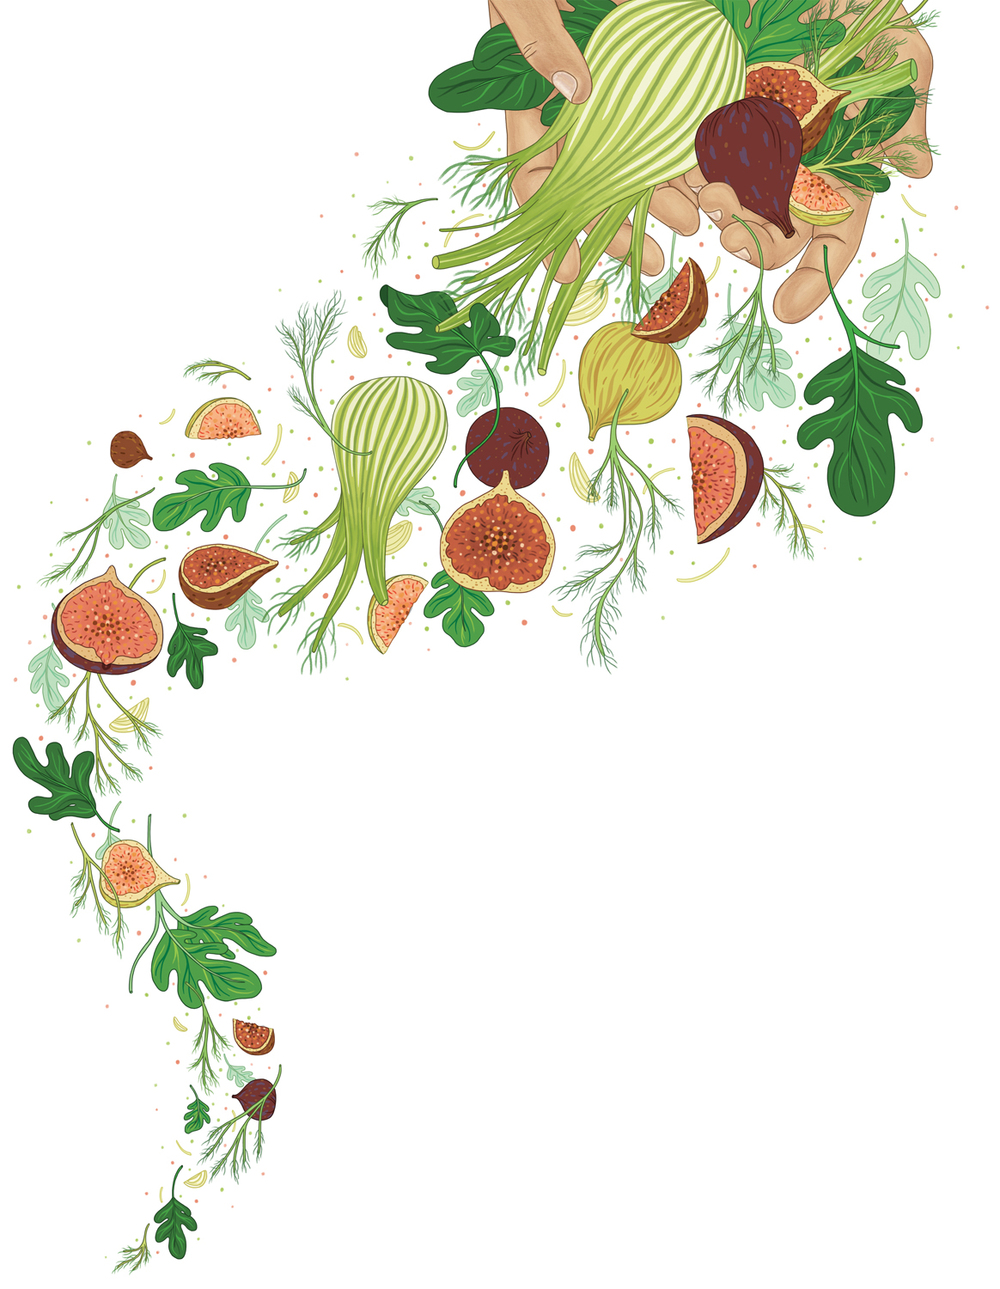 Fennel-and-Figs-300dpi.jpg